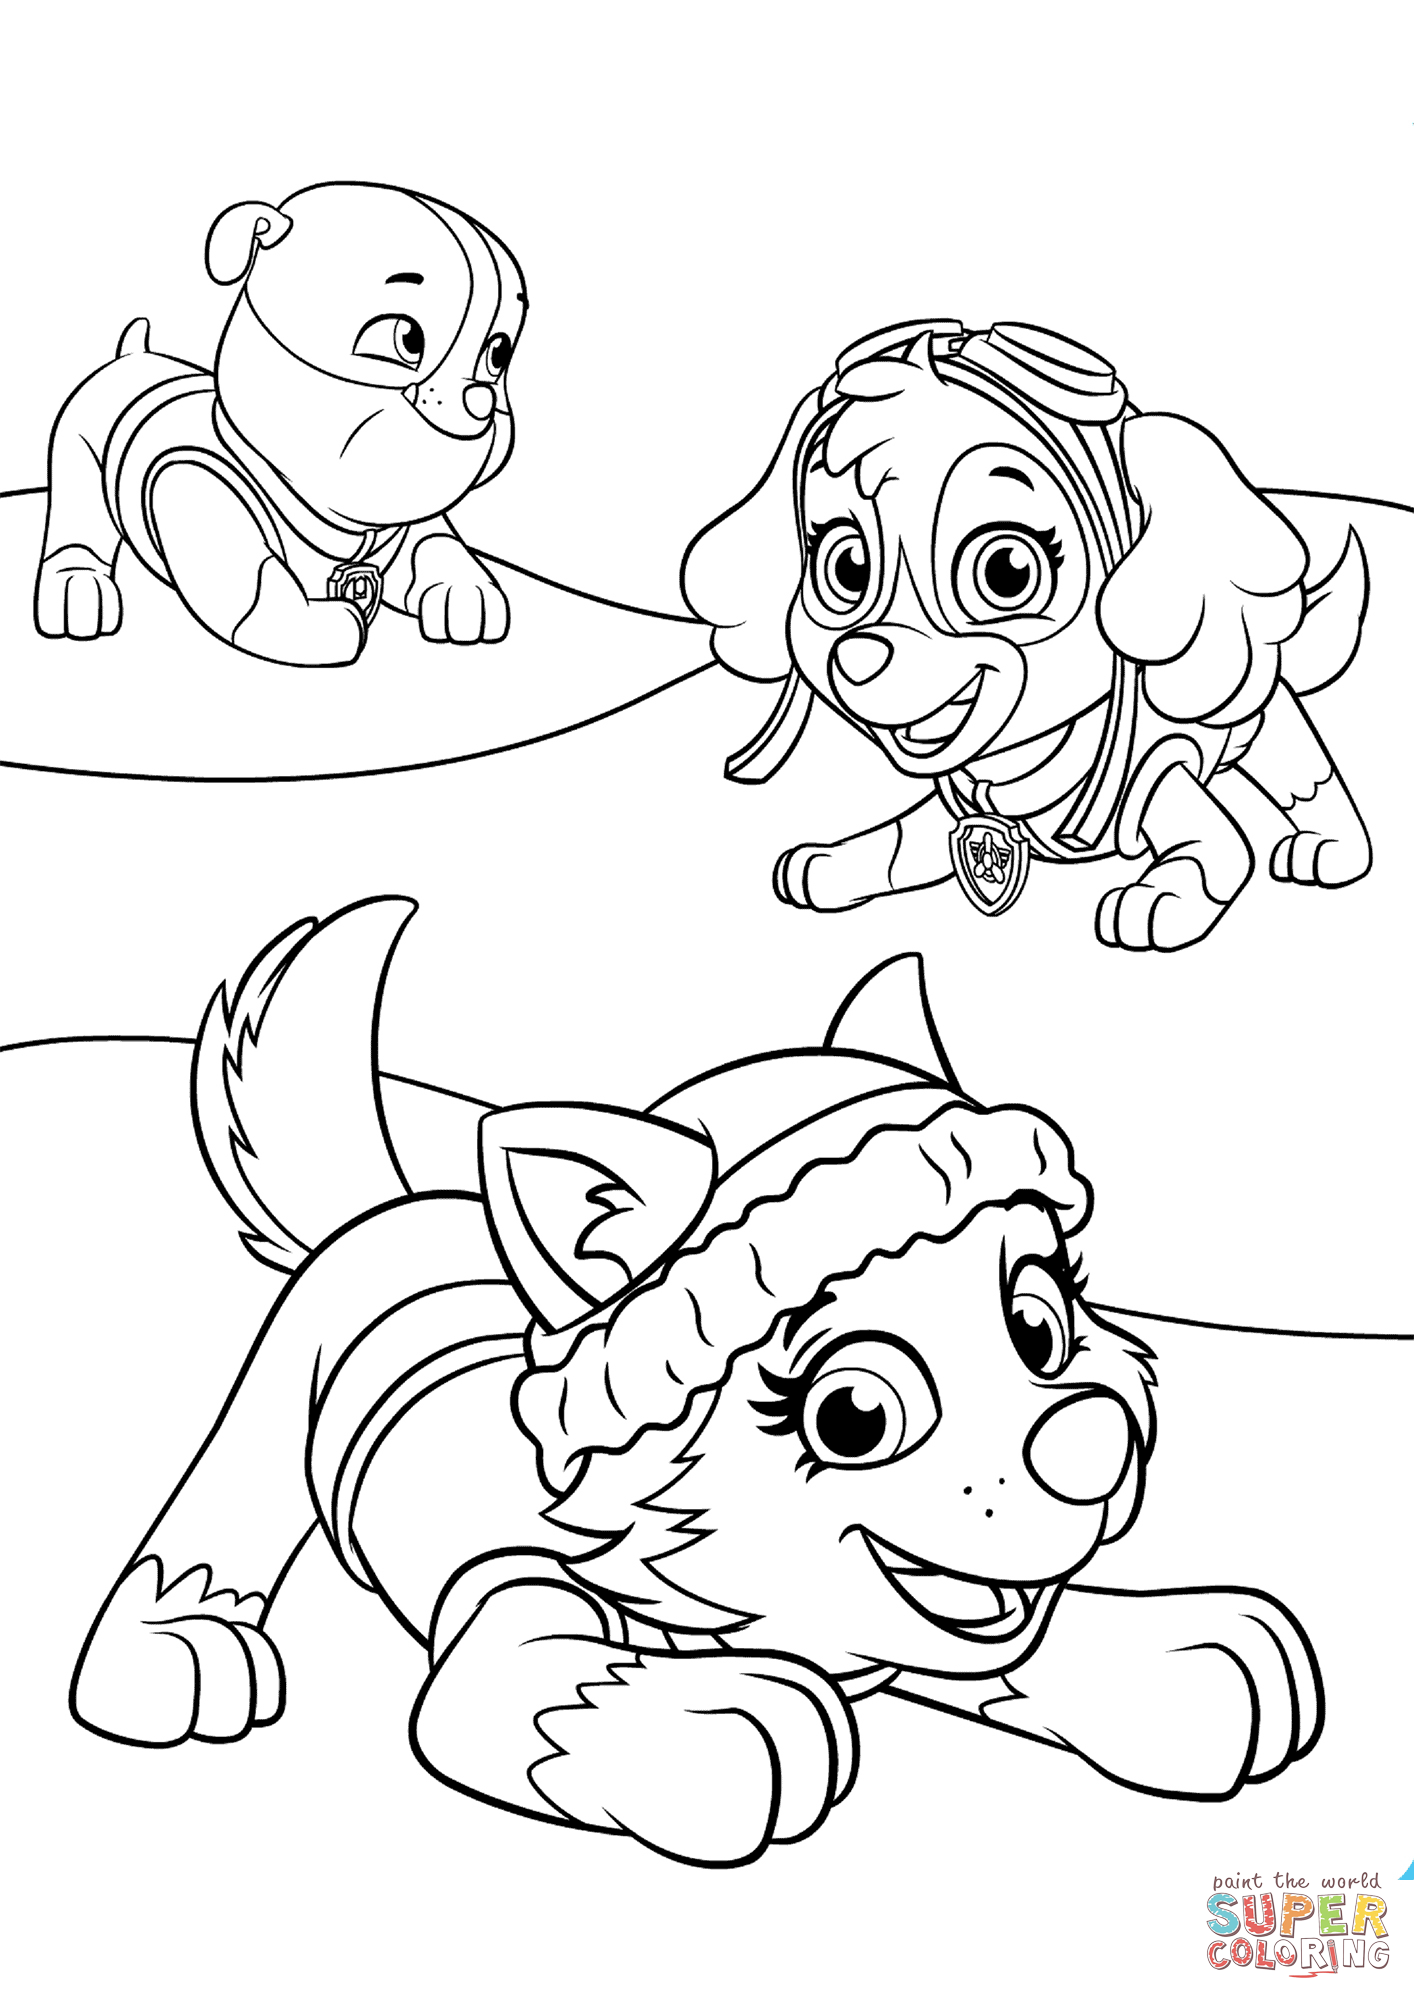 everest coloring page paw patrol everest coloring page at getcoloringscom coloring everest page